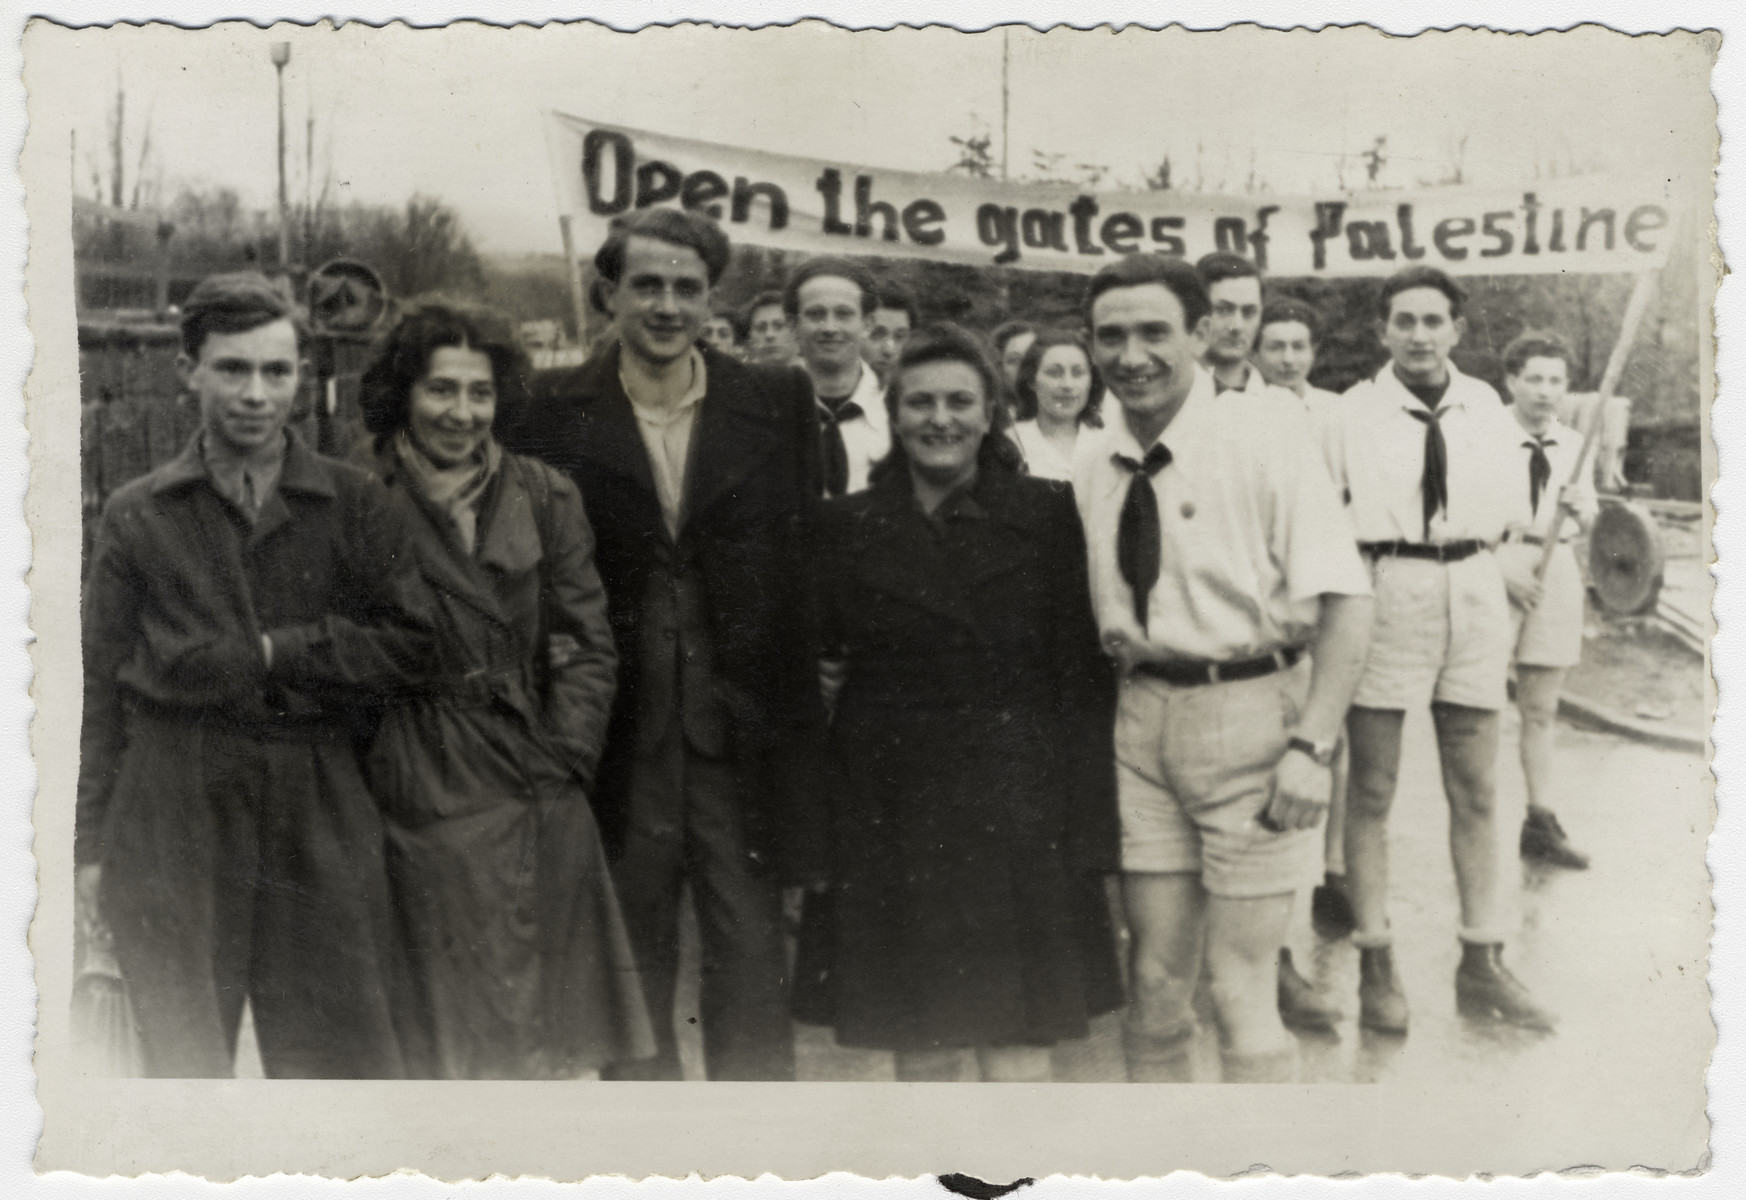 "Members of Kibbutz Havivah Reik demonstrate against British Palestine immigration policy.  In the background is a banner that says, ""Open the gates of Palestine.""  Willy Bogler is standing in the center."